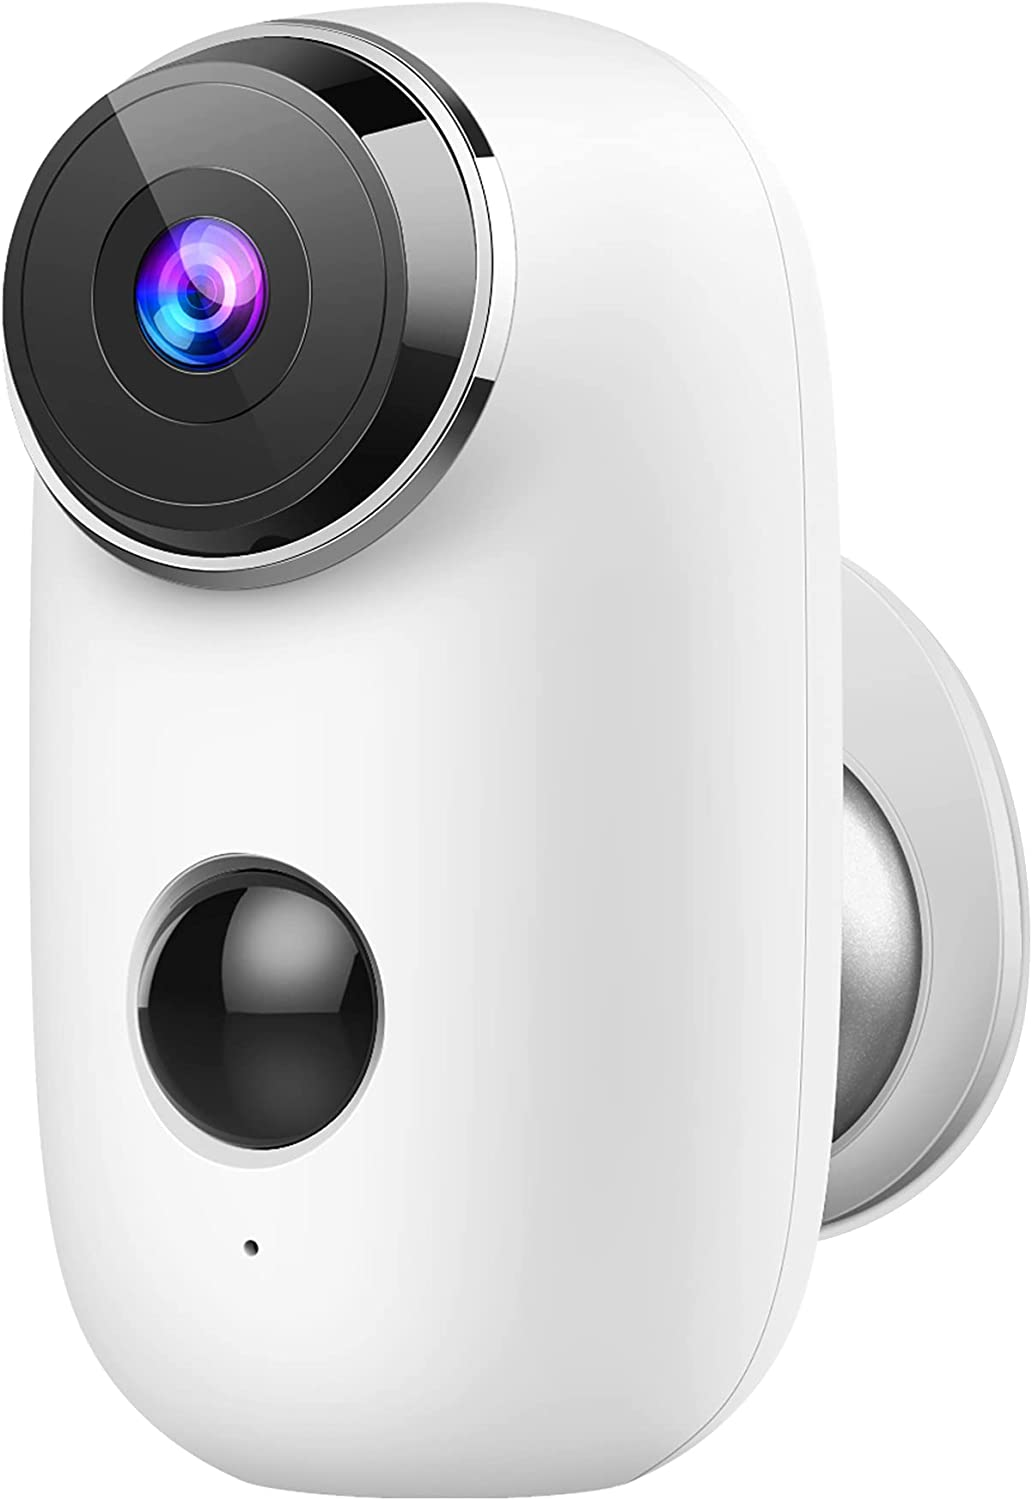 Security Camera Outdoor, 1080P Battery-Powered Camera with Night Vision, Waterproof Home Security Camera for Indoor/Outdoor